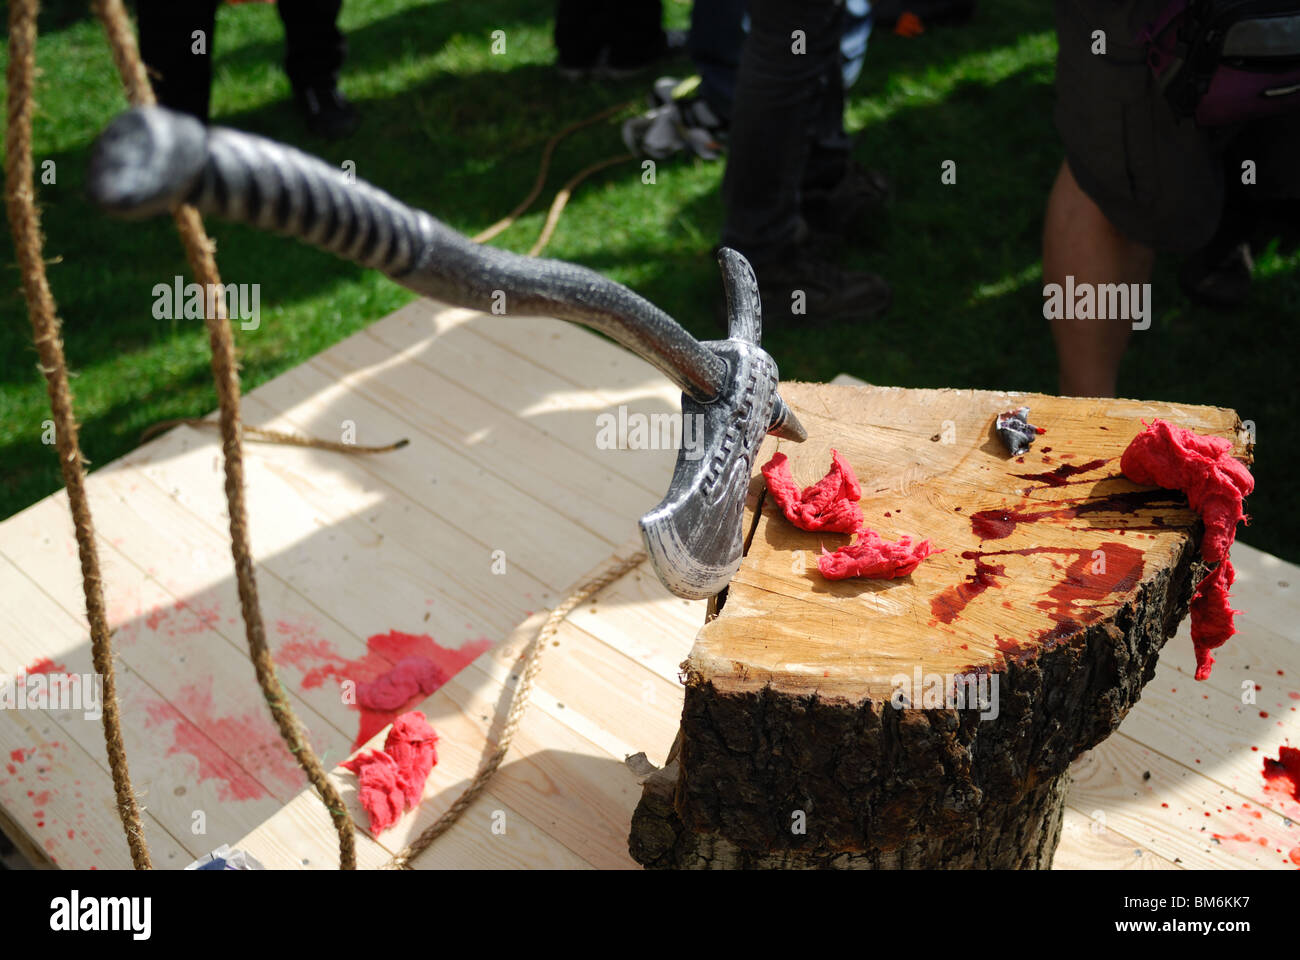 The executioner's axe lies in a block of wood which was used to behead the effigy of Gordon Brown on May day. - Stock Image